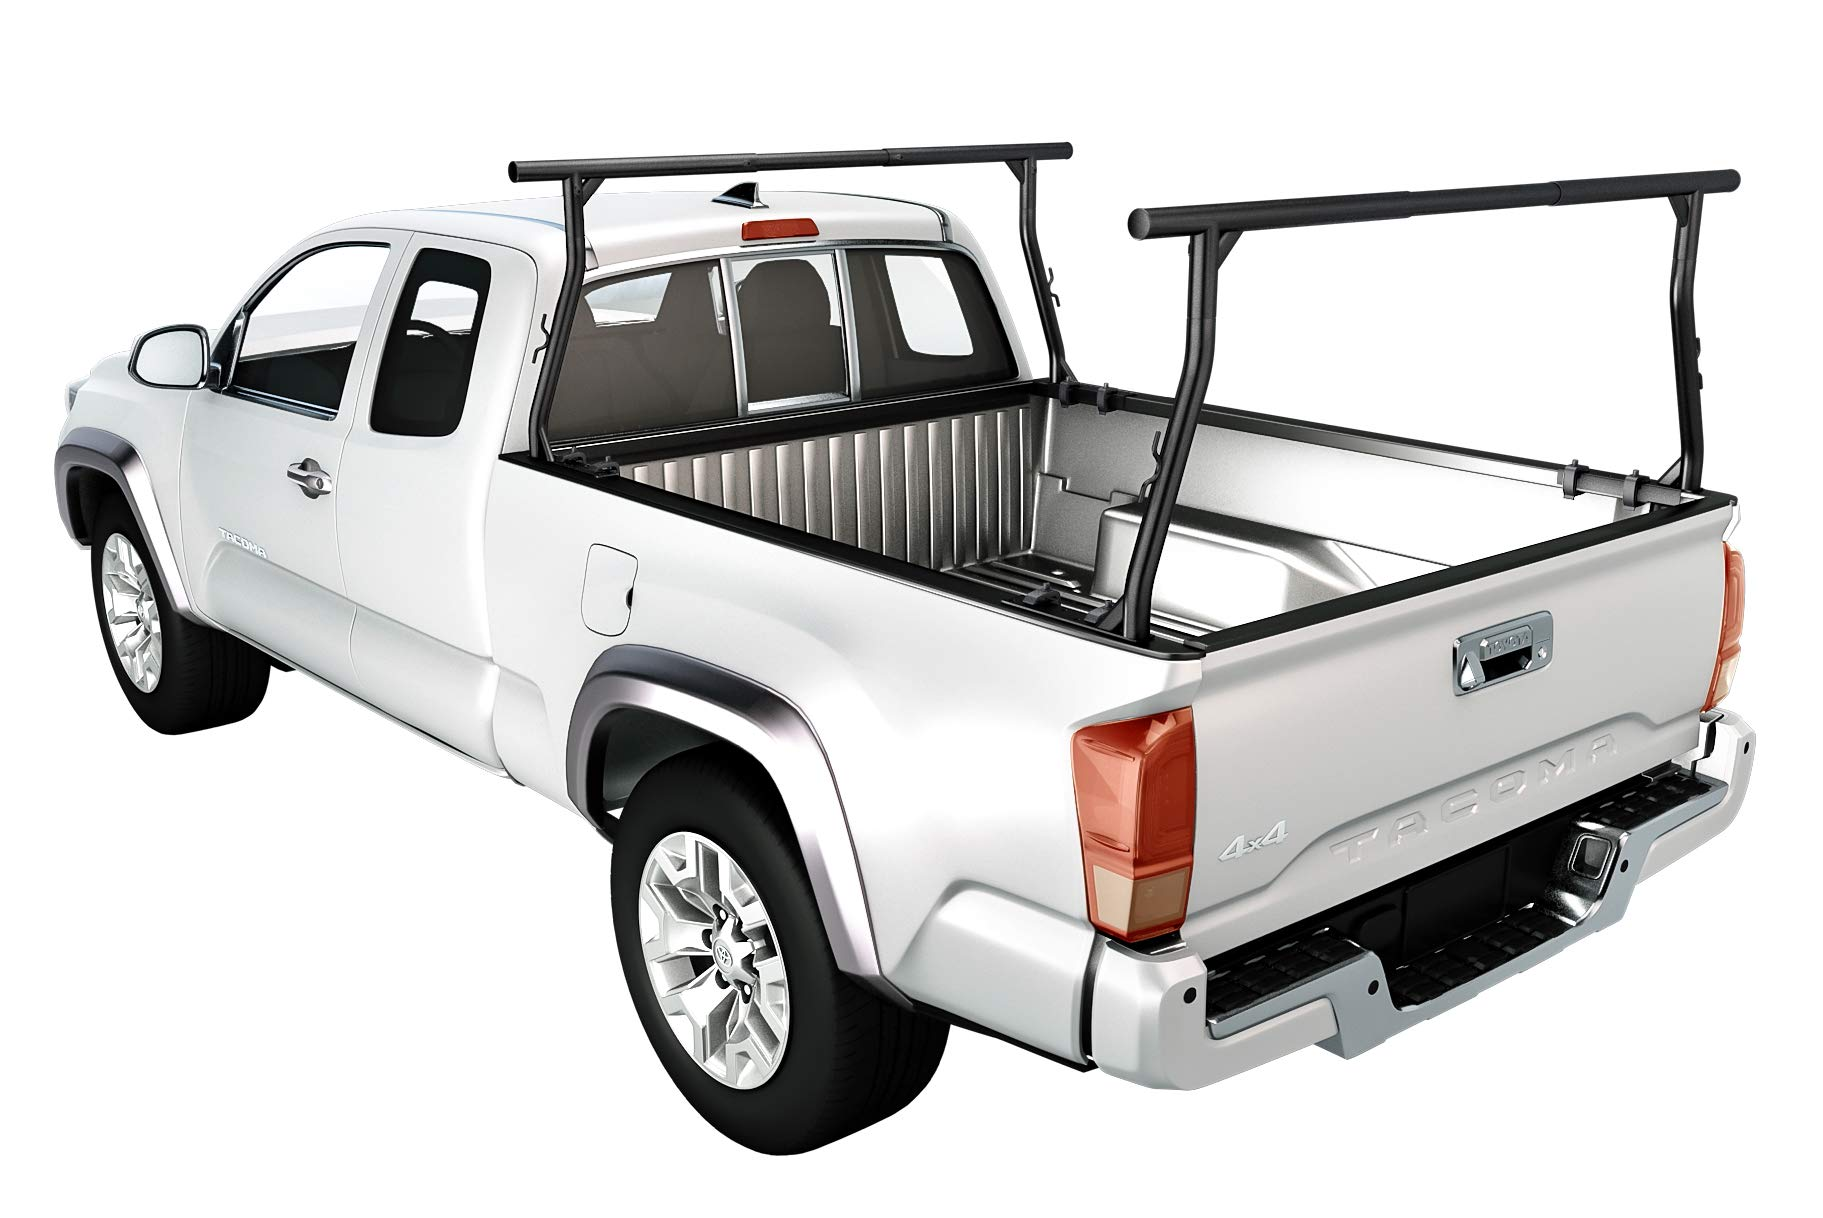 AA-Racks Model X3502 800Ibs Capacity Extendable Steel Pick-Up Truck Ladder Rack with (8) Non-Drilling C-Clamps Two-bar Set - Matte Black by AA Products Inc. (Image #6)